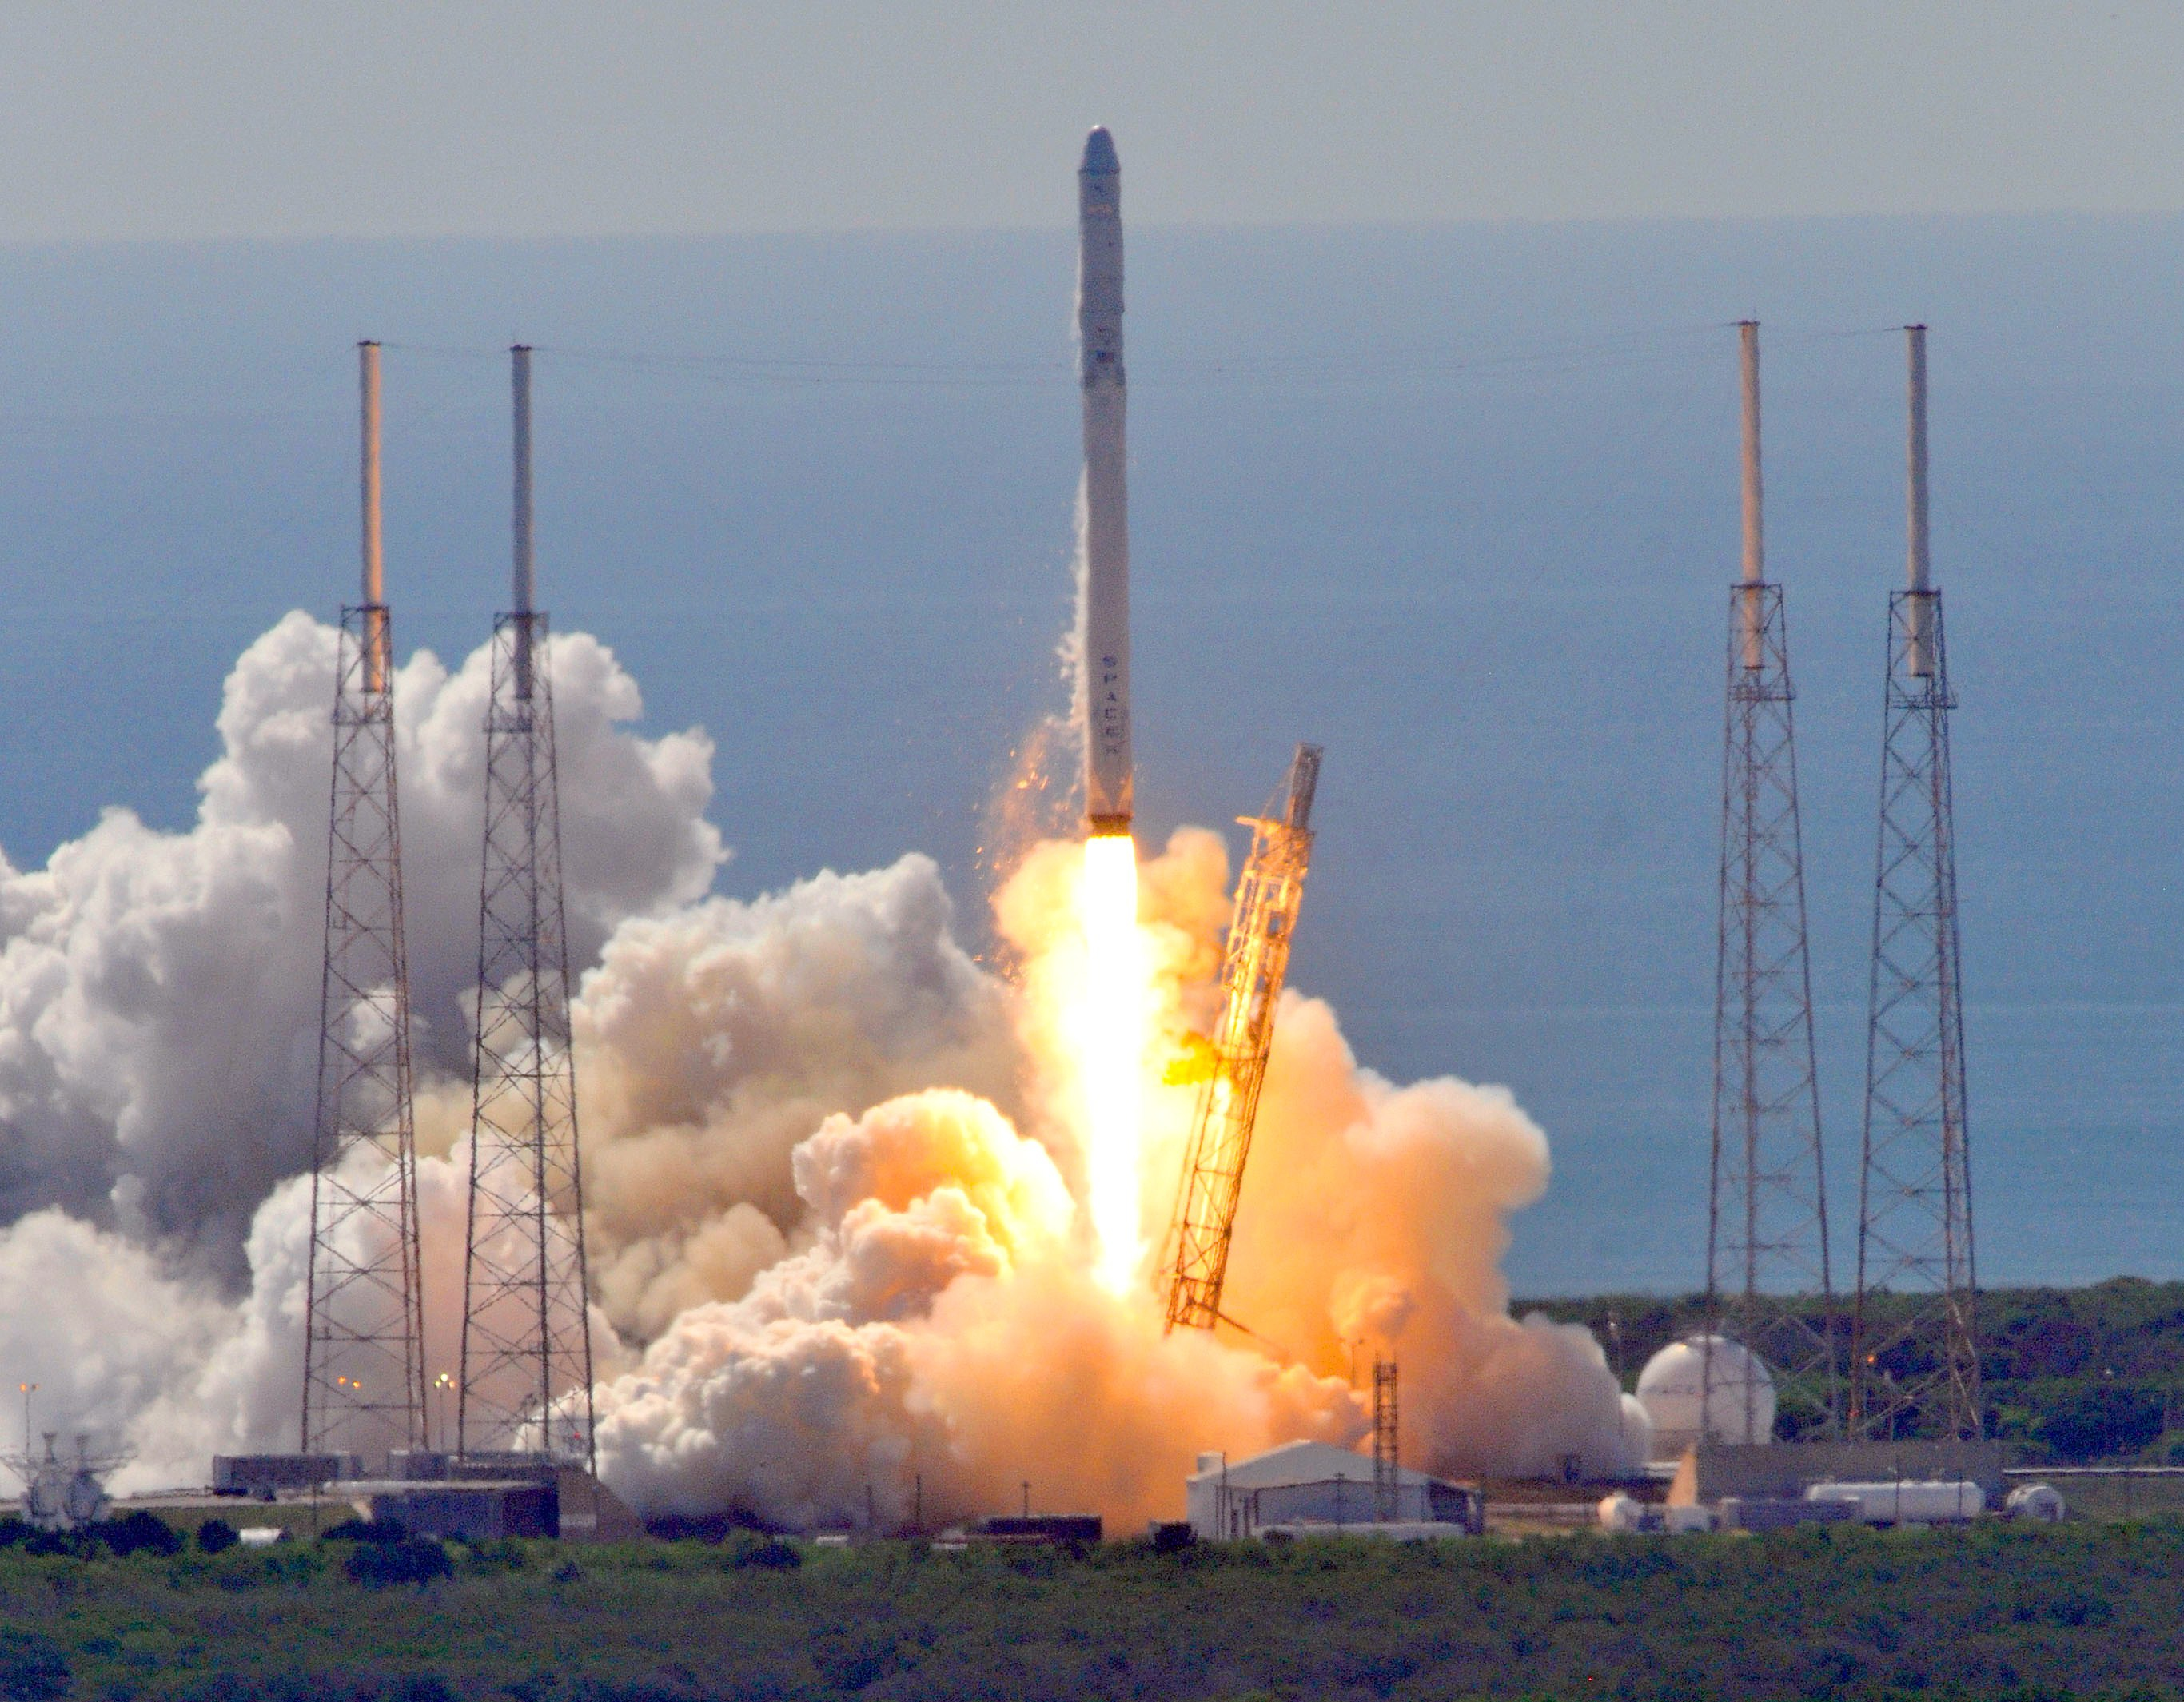 SpaceX's Falcon 9 rocket launches at Cape Canaveral